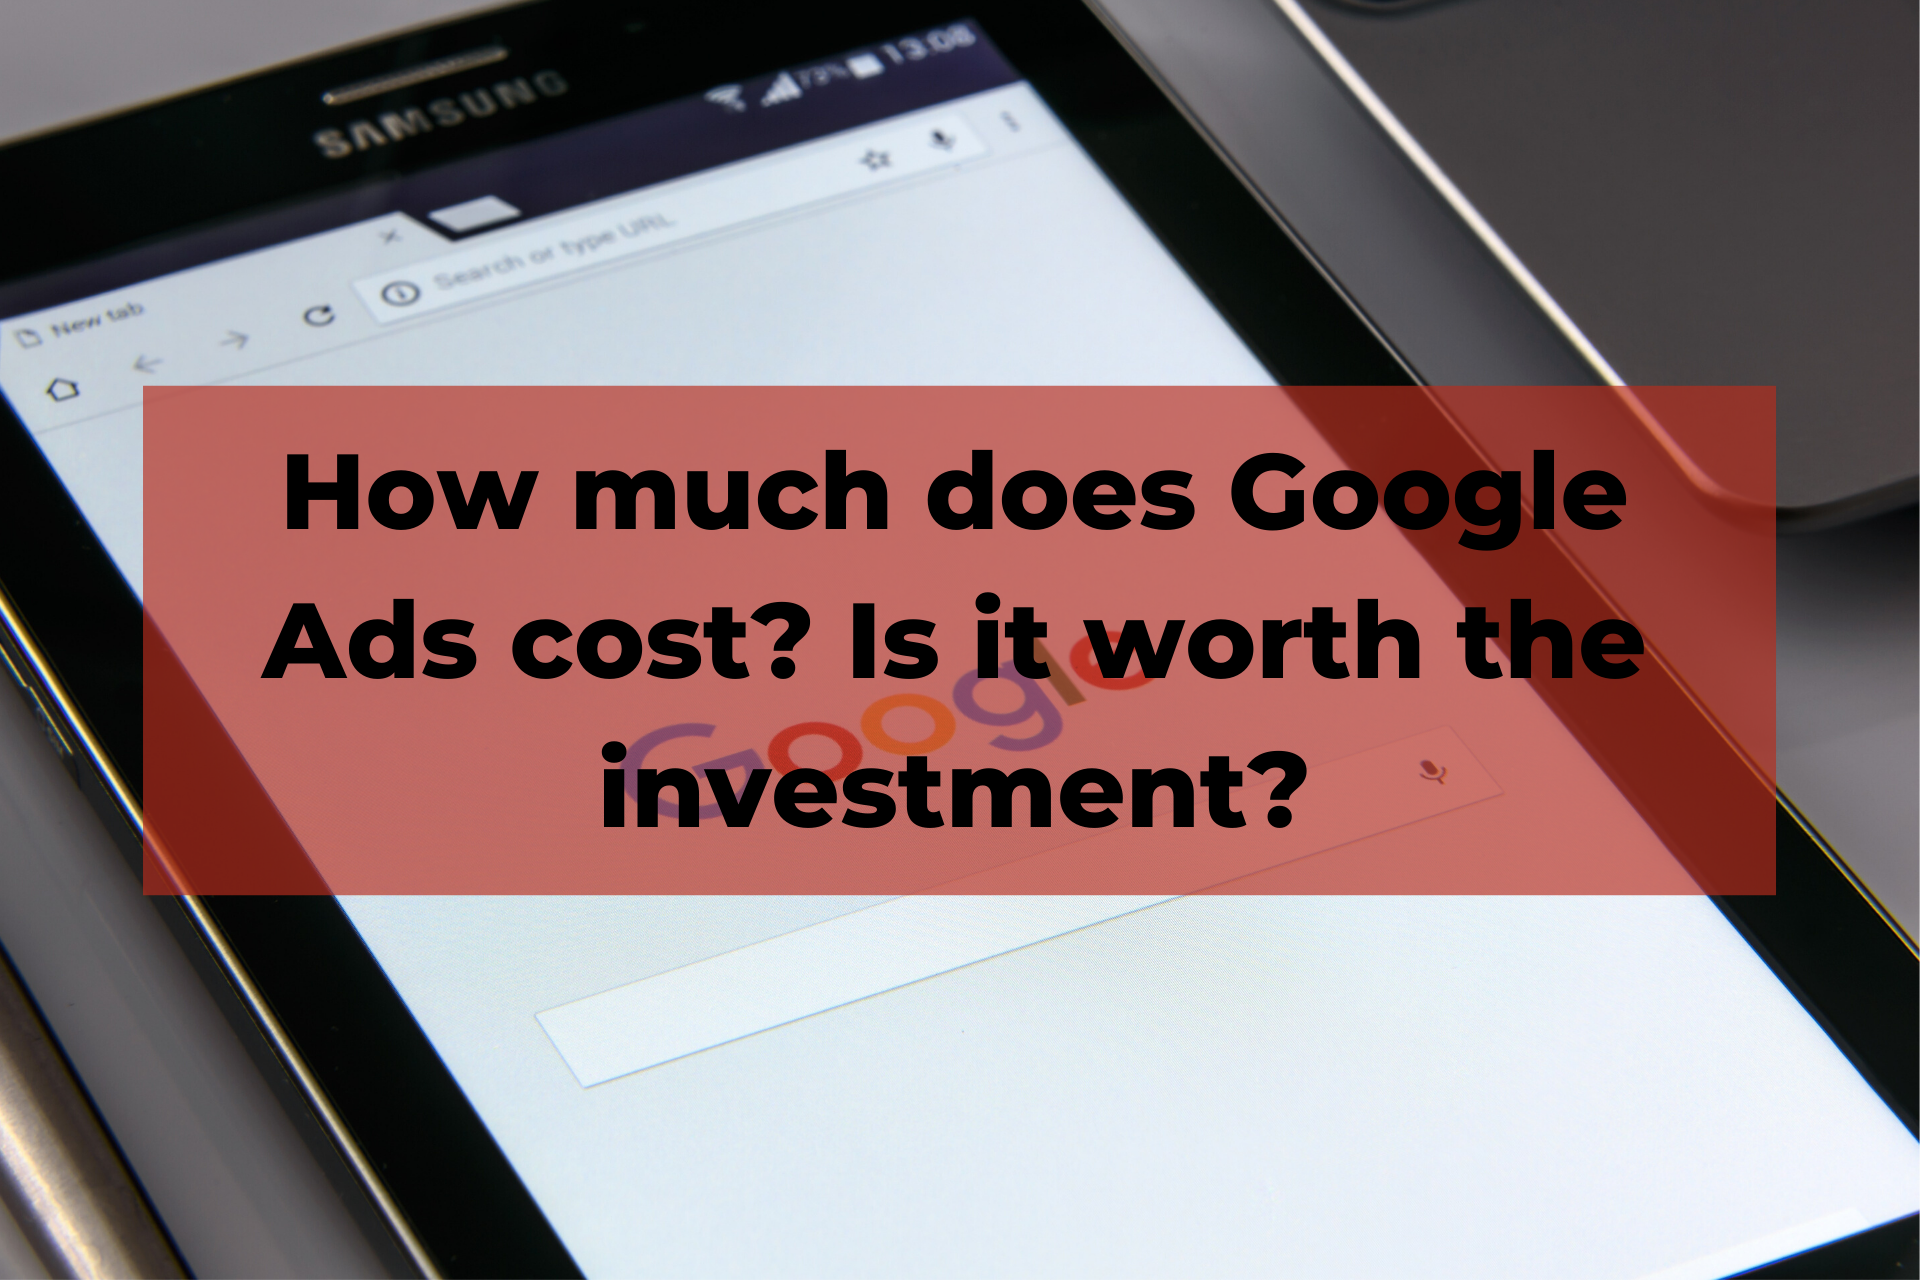 How much does Google Ads cost? Is it worth the investment?